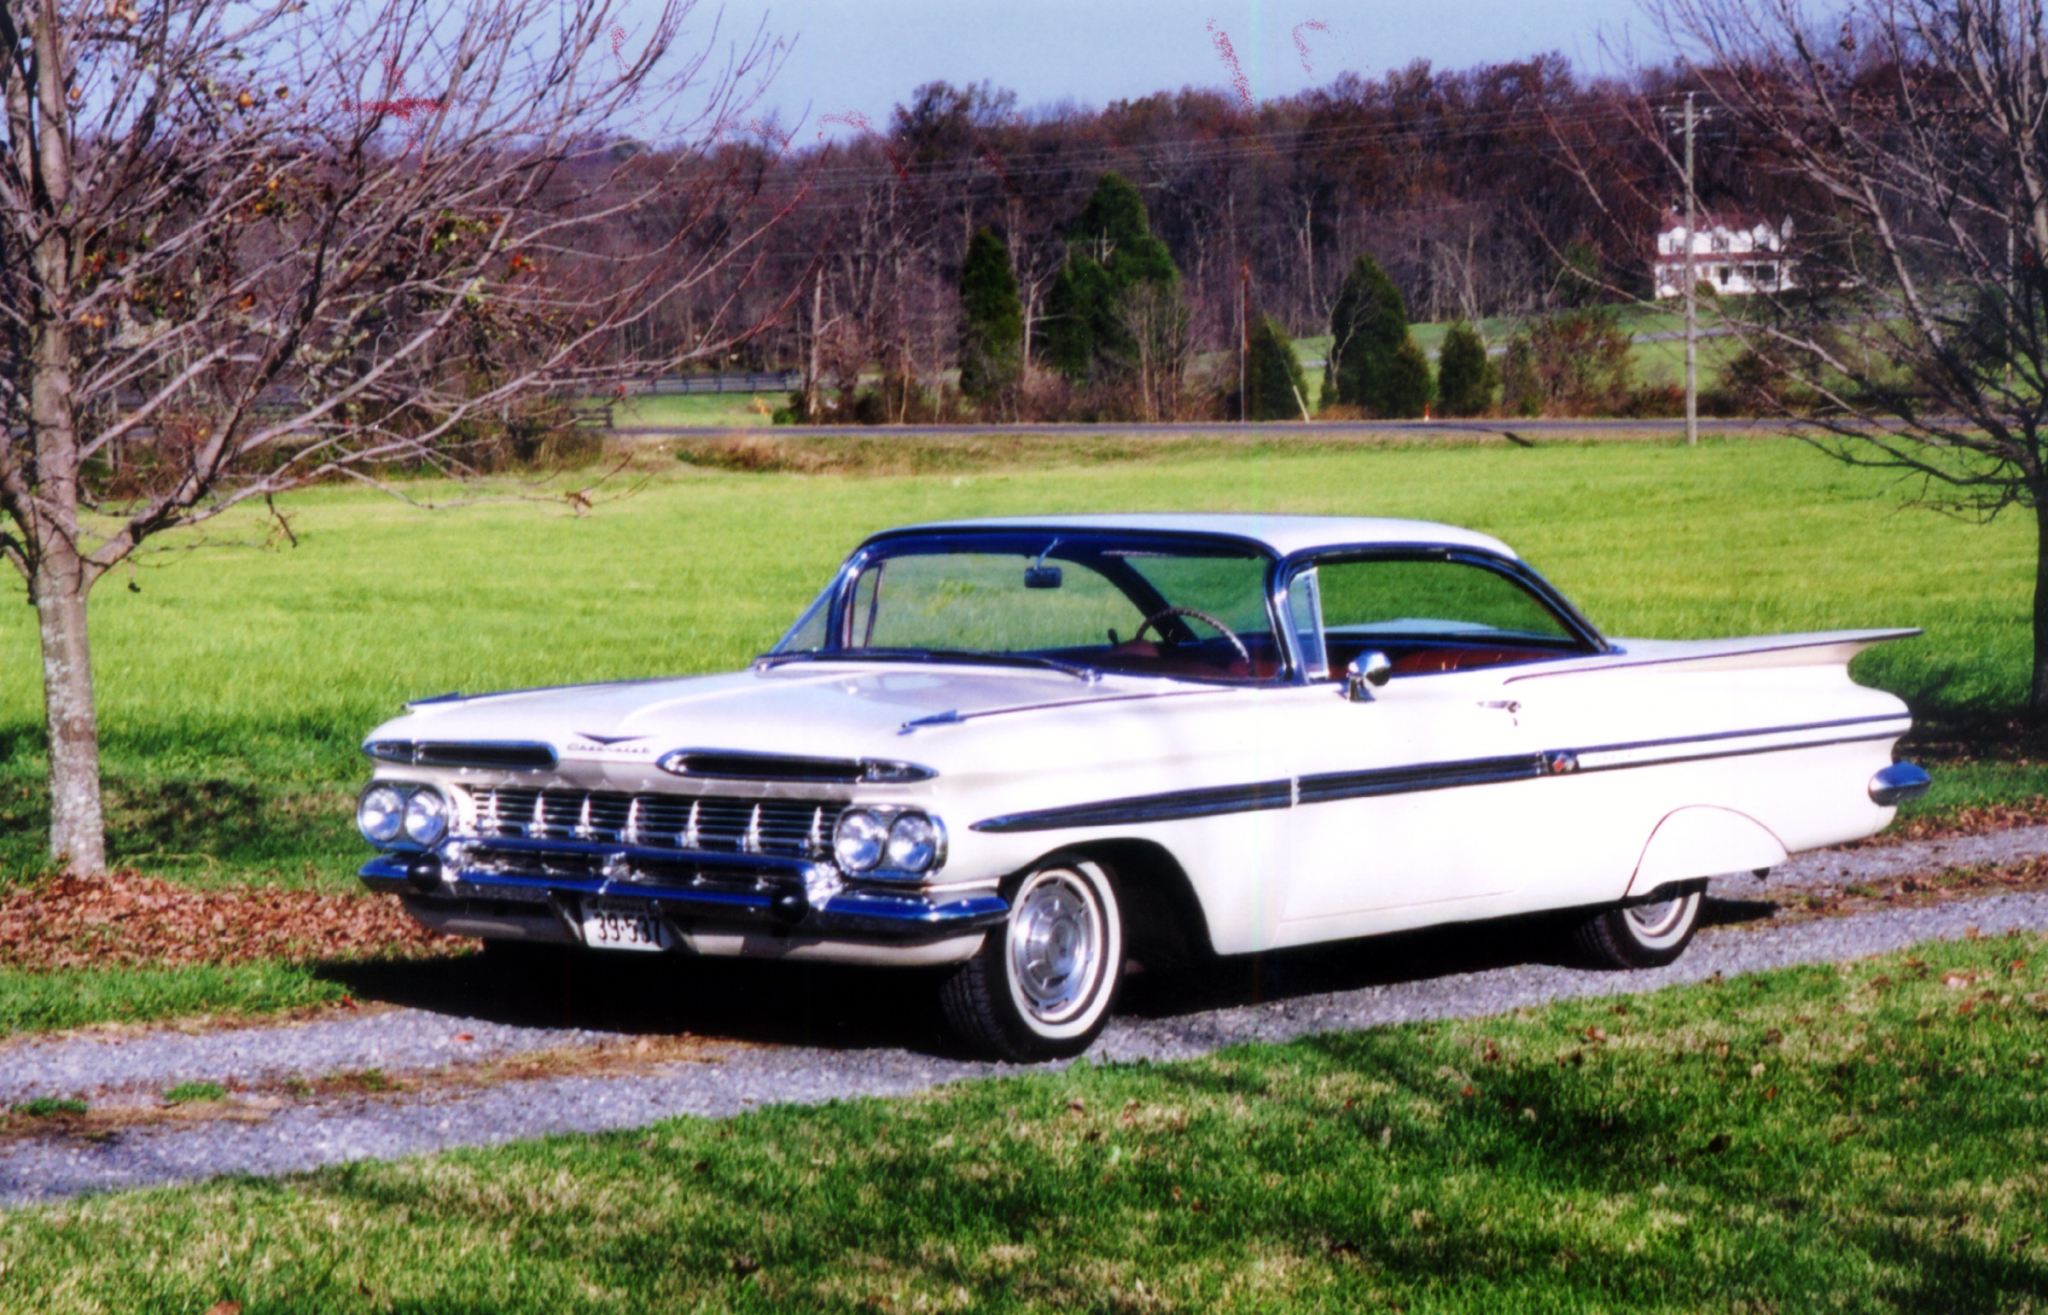 1959 Chevrolet Impala: A big yet nimble car